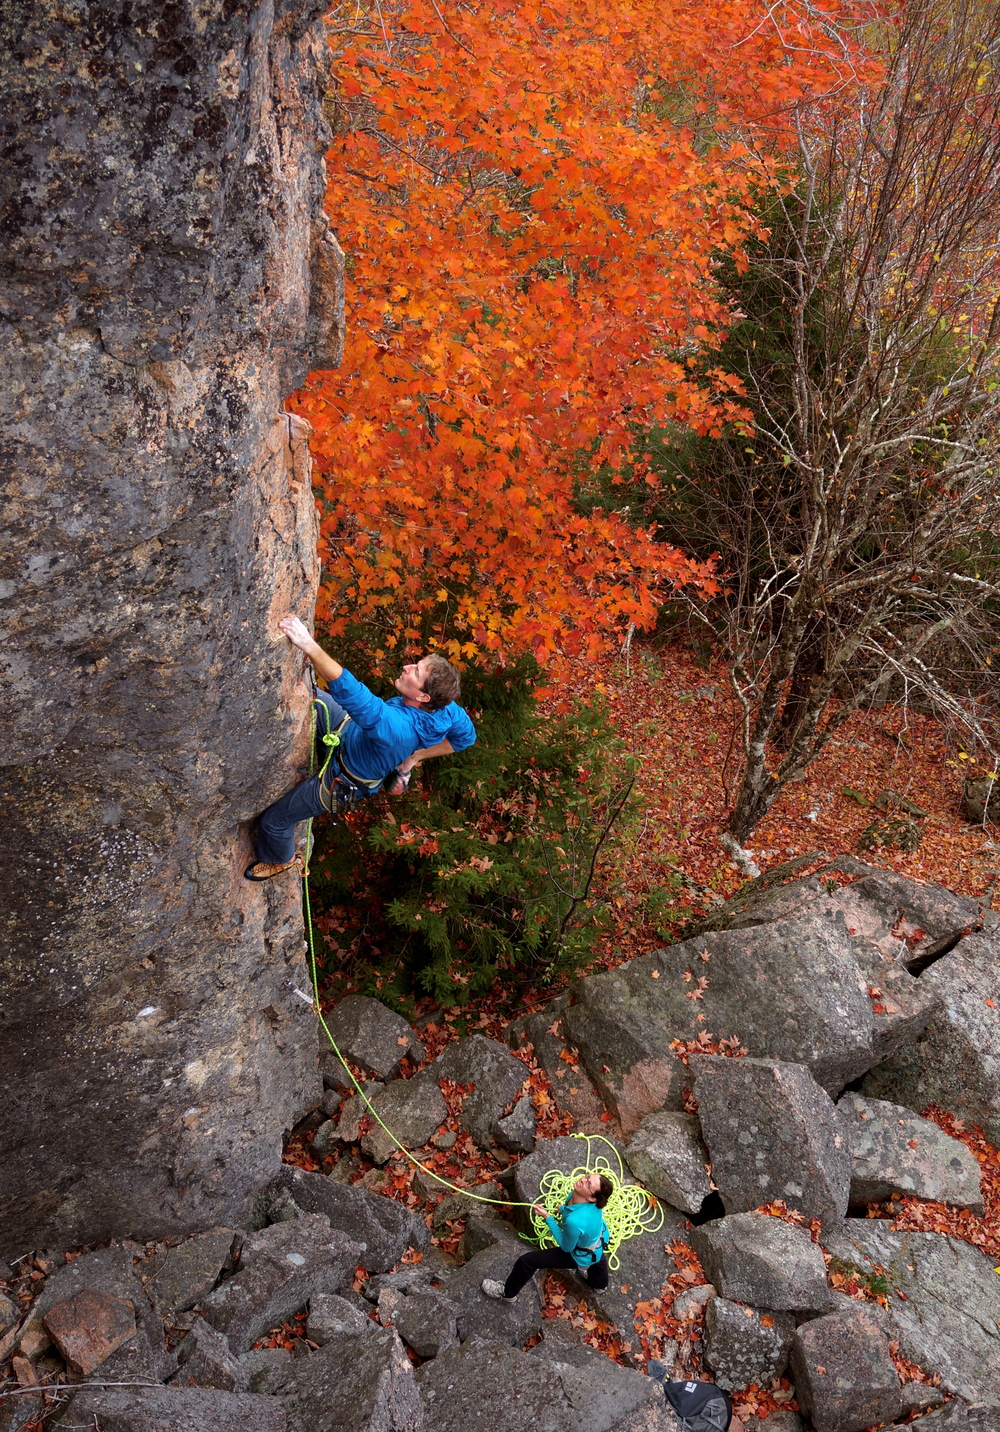 Jeff Butterfield on Stratocaster (5.10c).